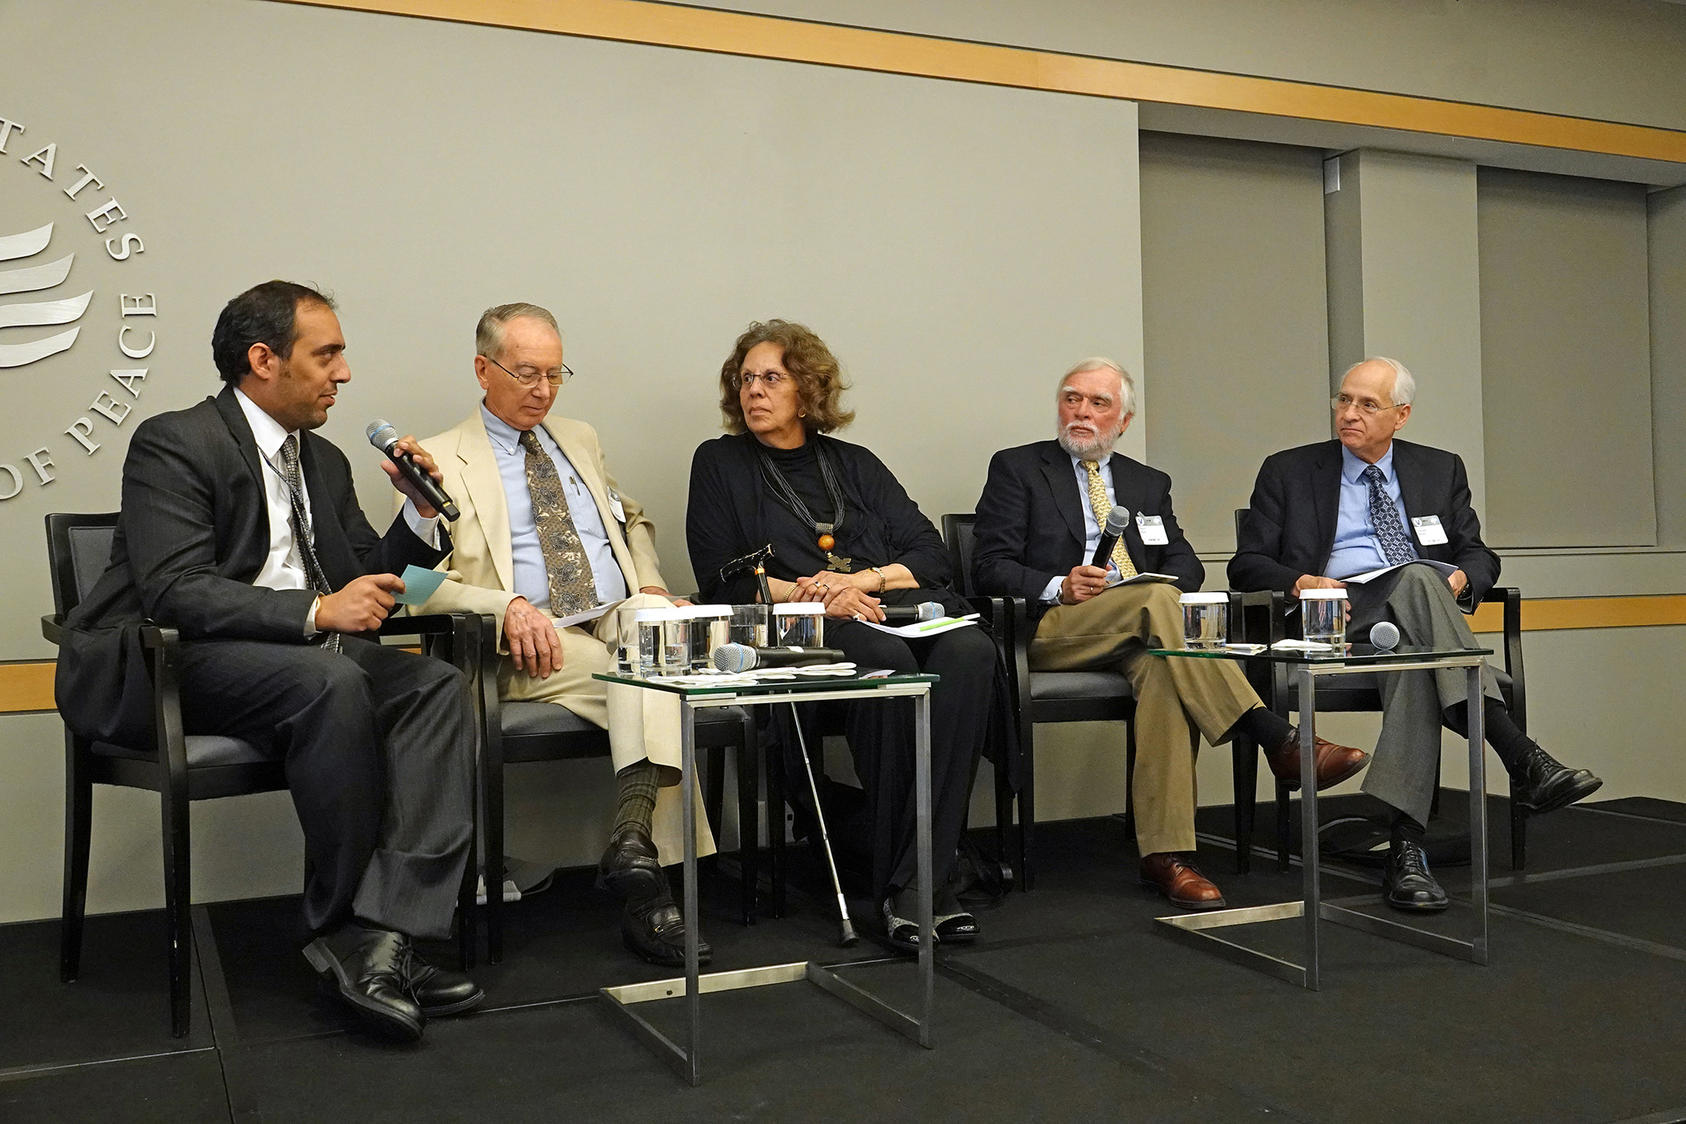 From left to right: USIP's Aly Verjee; Amb. David Shinn, Amb. Aurelia Brazil, Amb. Marc Baas, and Amb. Donald Booth at USIP.